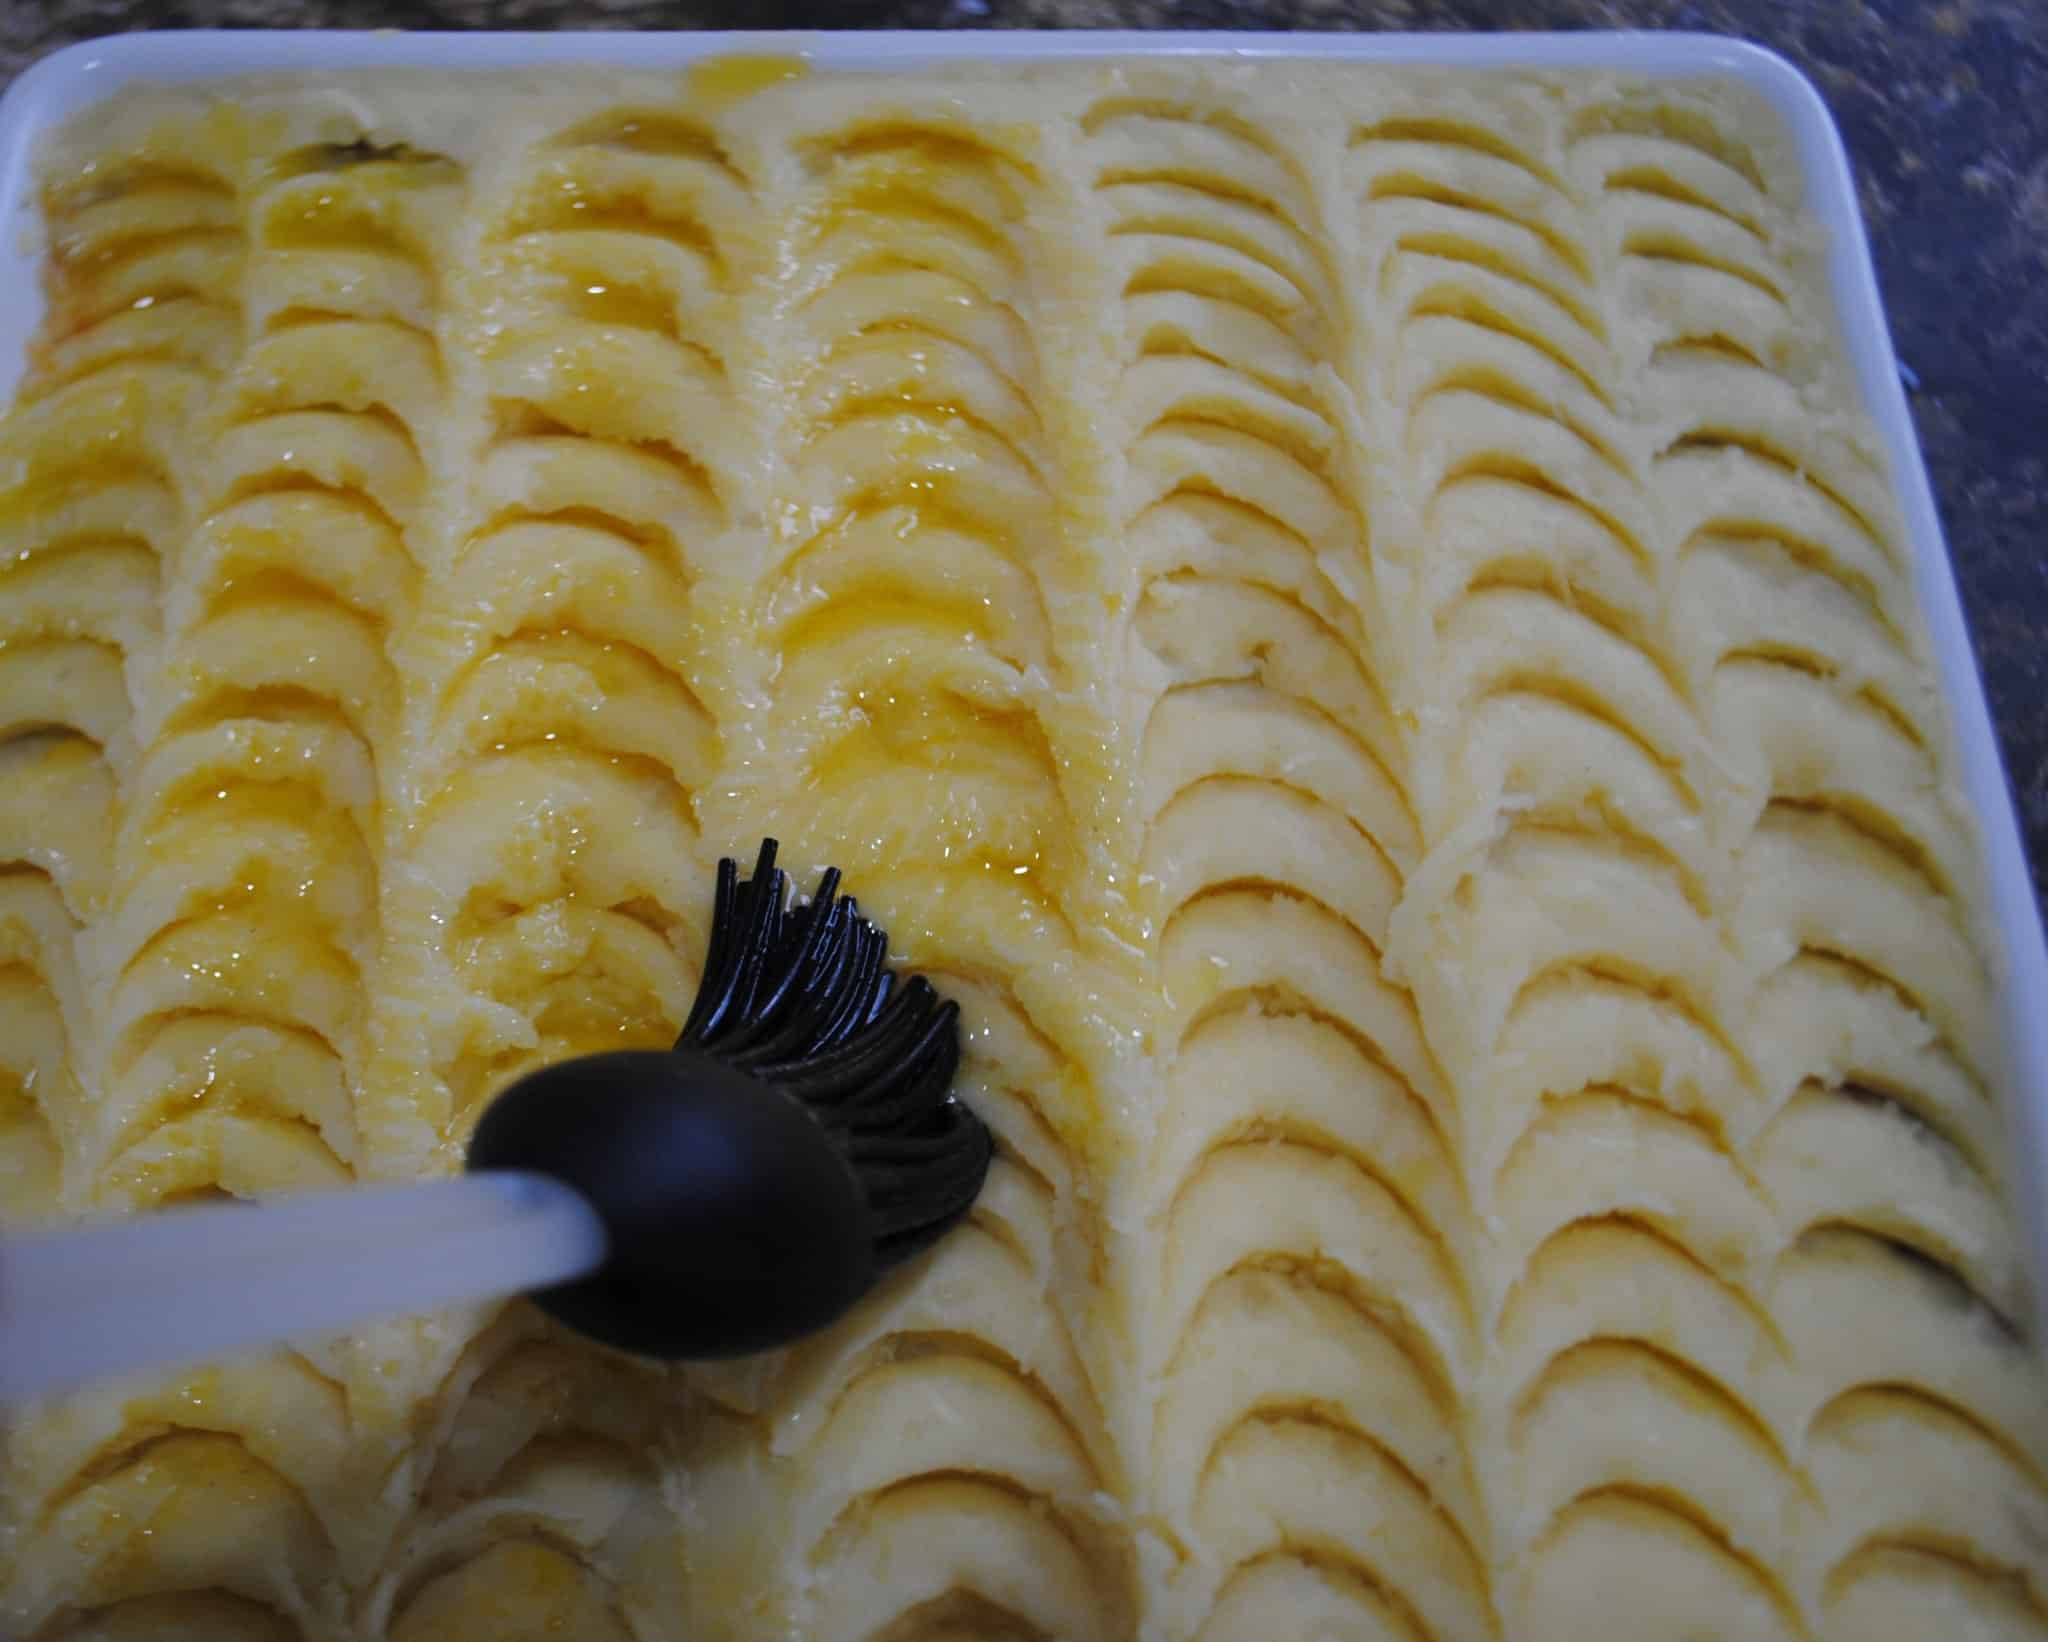 shepherds pie - brushing potatoes with butter using a pastry brush